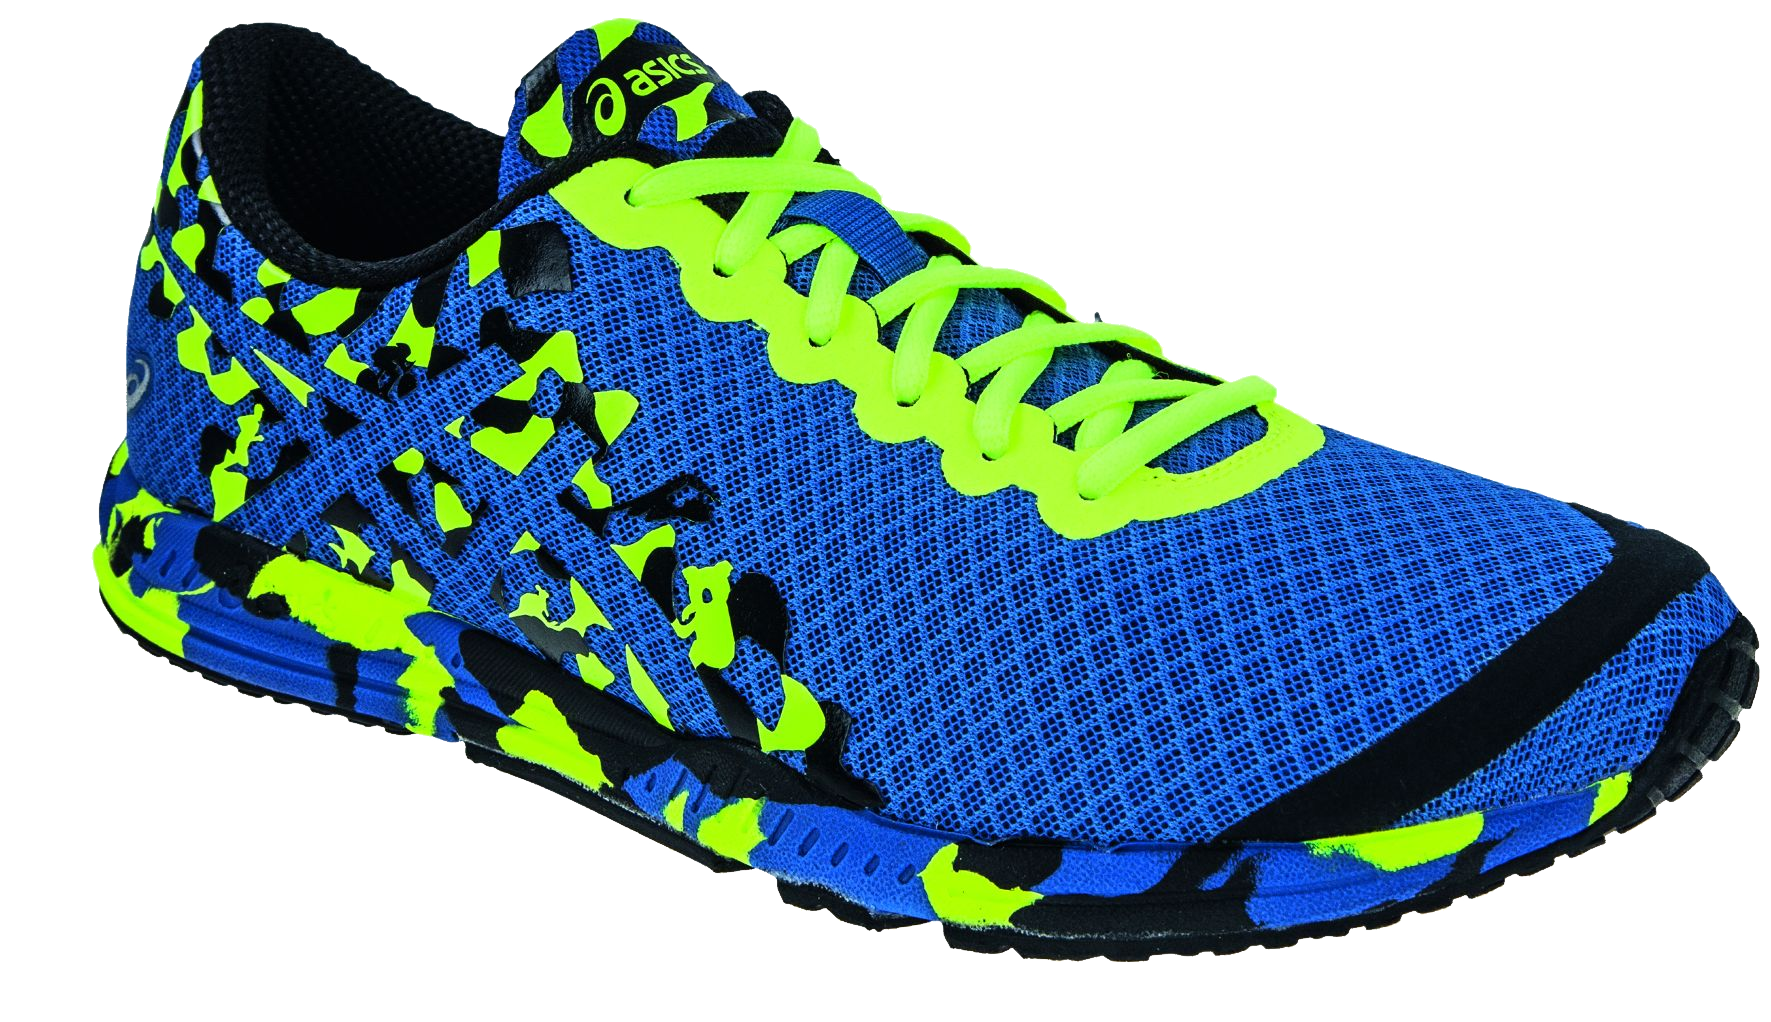 Running Shoes Png Image Running Shoes Running Shoes